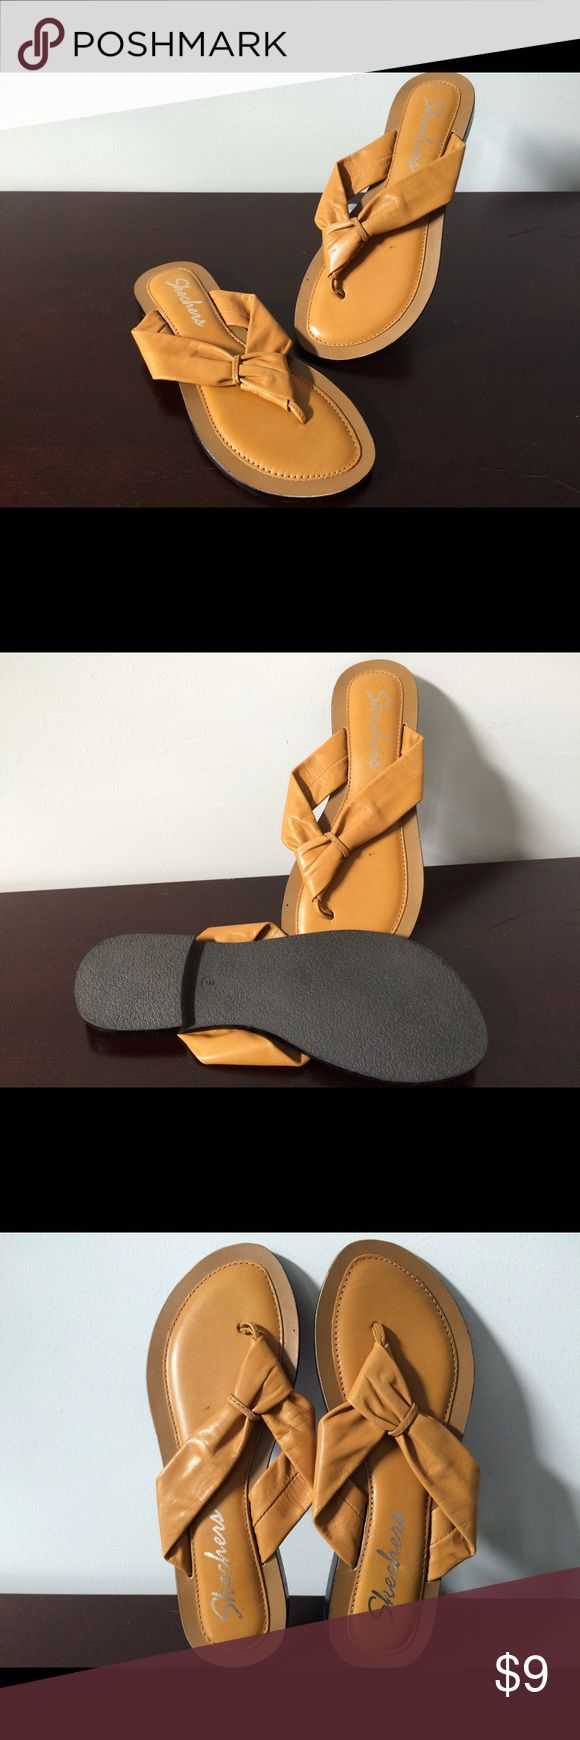 Skechers Flat Sandal Slipper Up for sale are these simple sandals by Skechers. Slipper style, slide on. Decorative knot design. Flat heel, cushioned insole. Mustard color. Pairs well with a loose skirt & summery top. Skechers Shoes Flats & Loafers